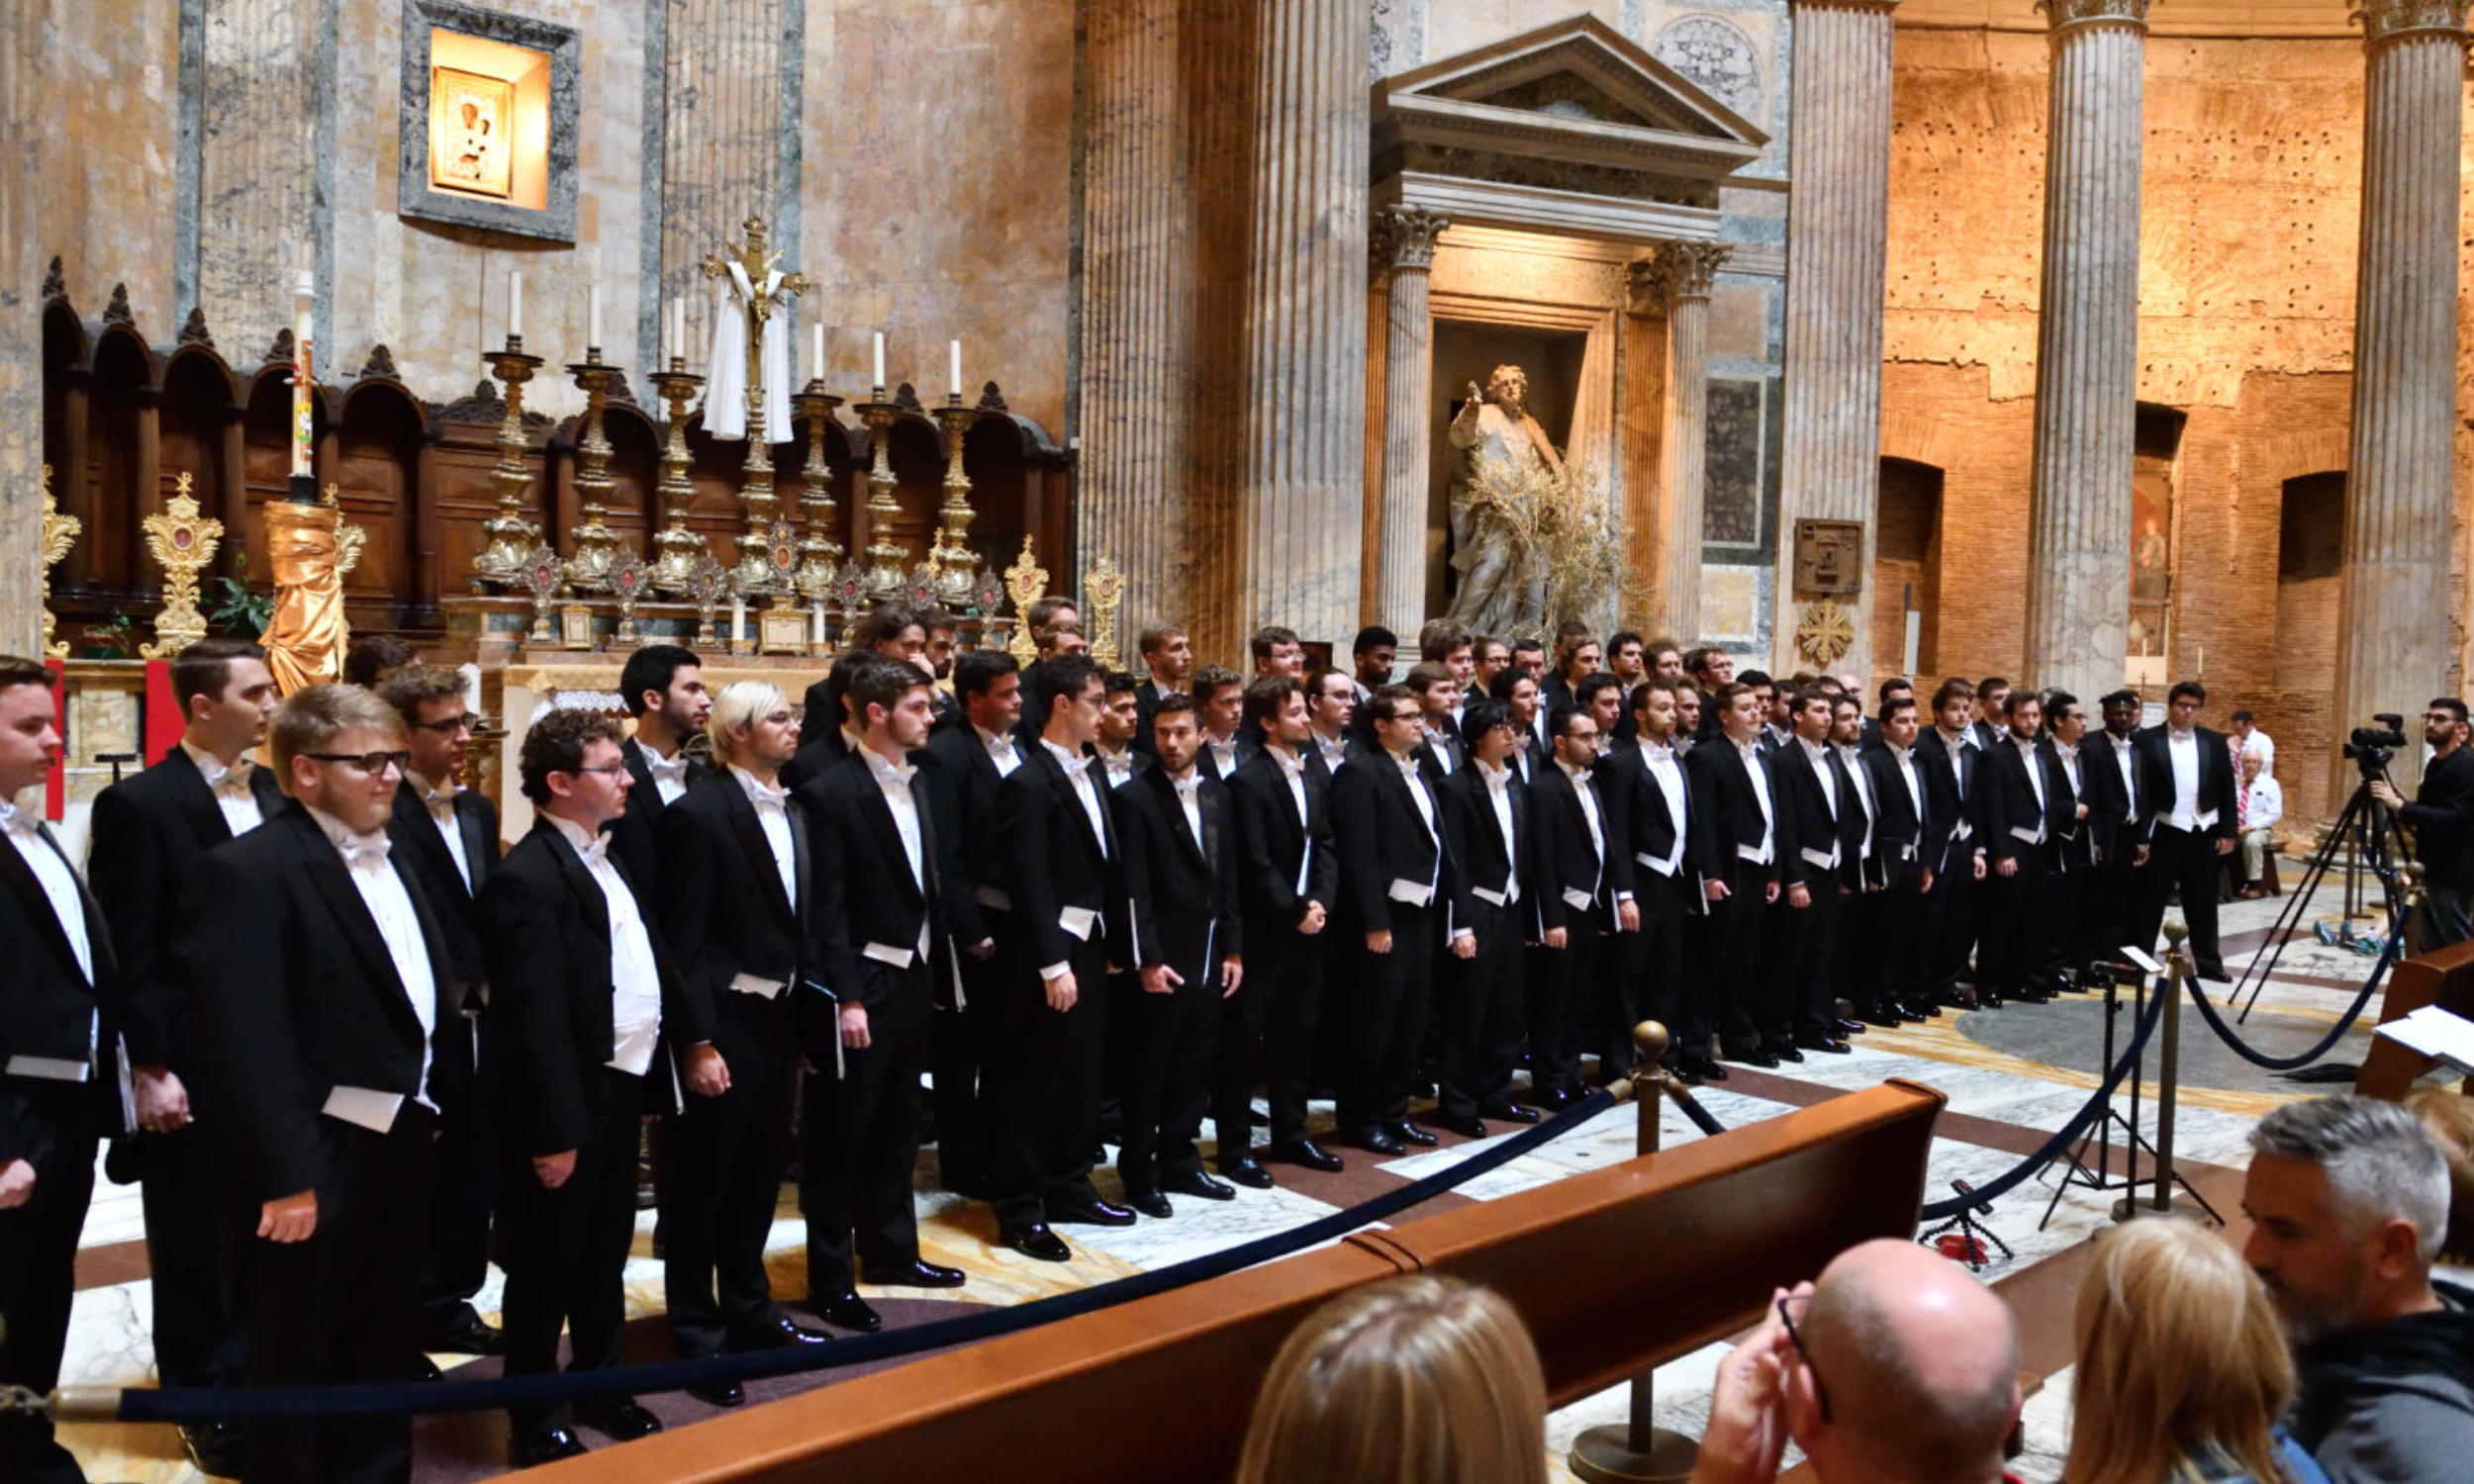 Formal concert at the major churches in Rome, Florence, Venice